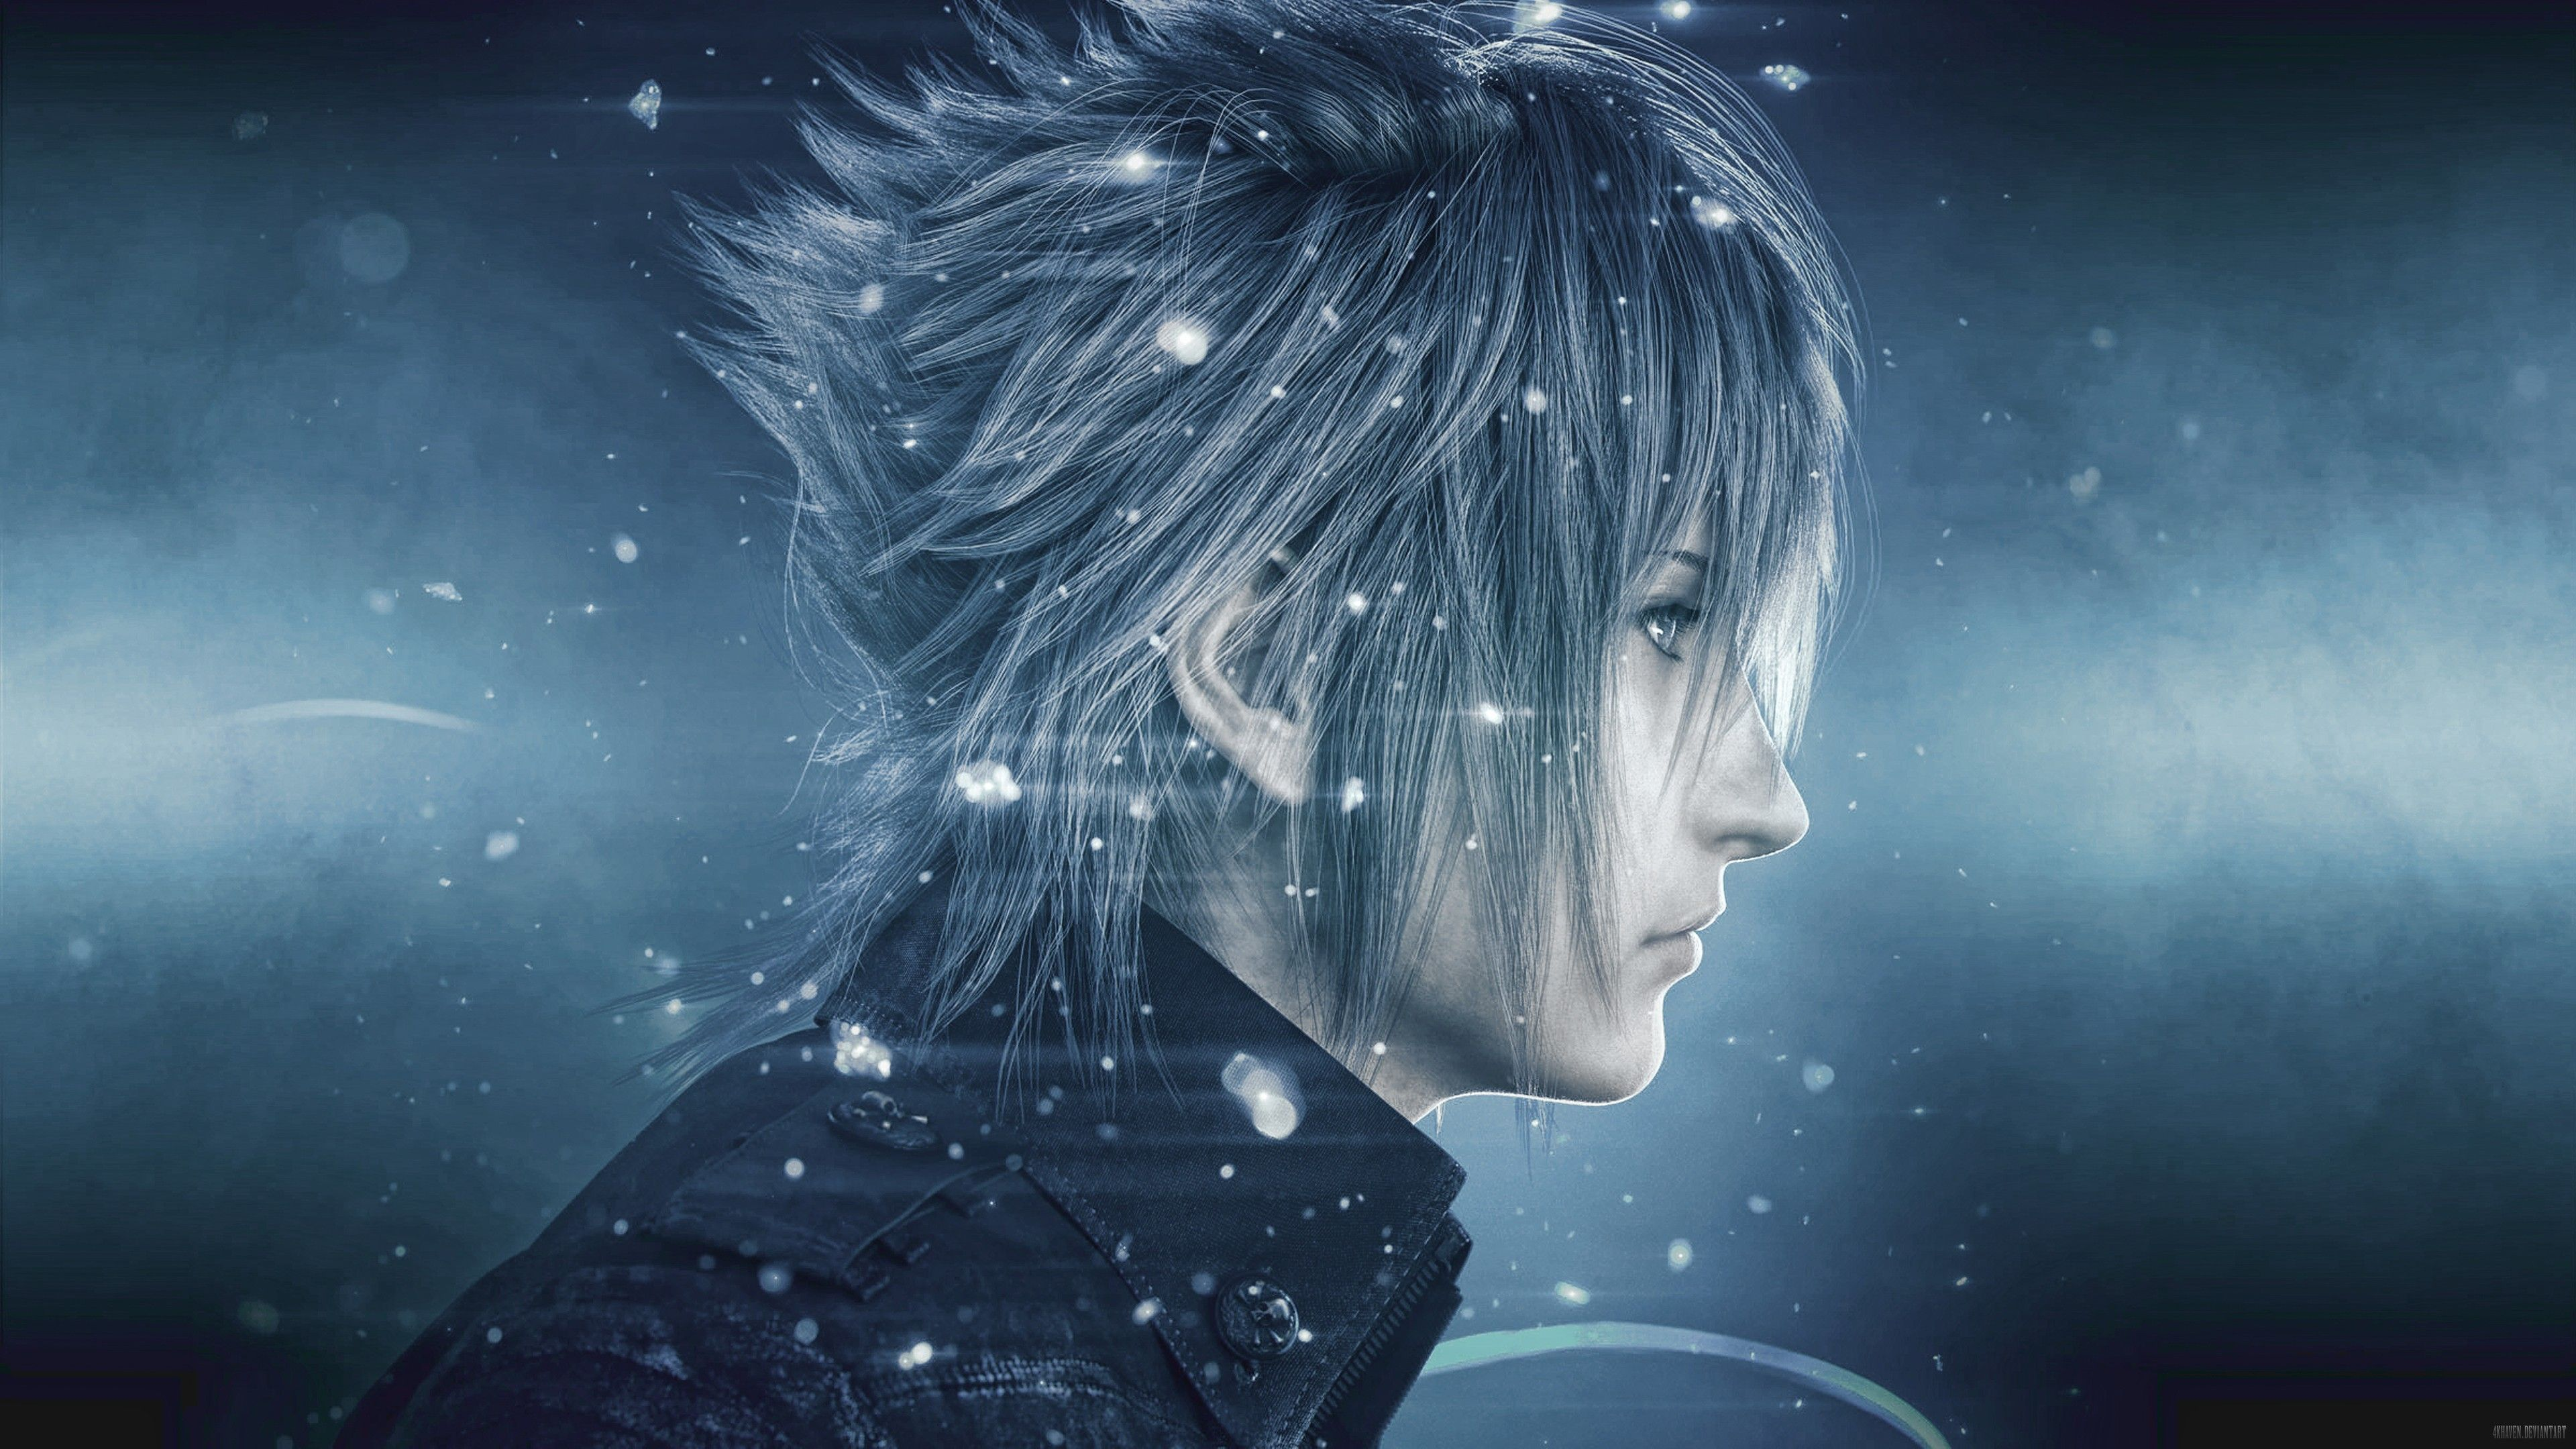 4k Final Fantasy Xv Hd Games 4k Wallpapers Images: Final Fantasy XV Noctis, HD Games, 4k Wallpapers, Images